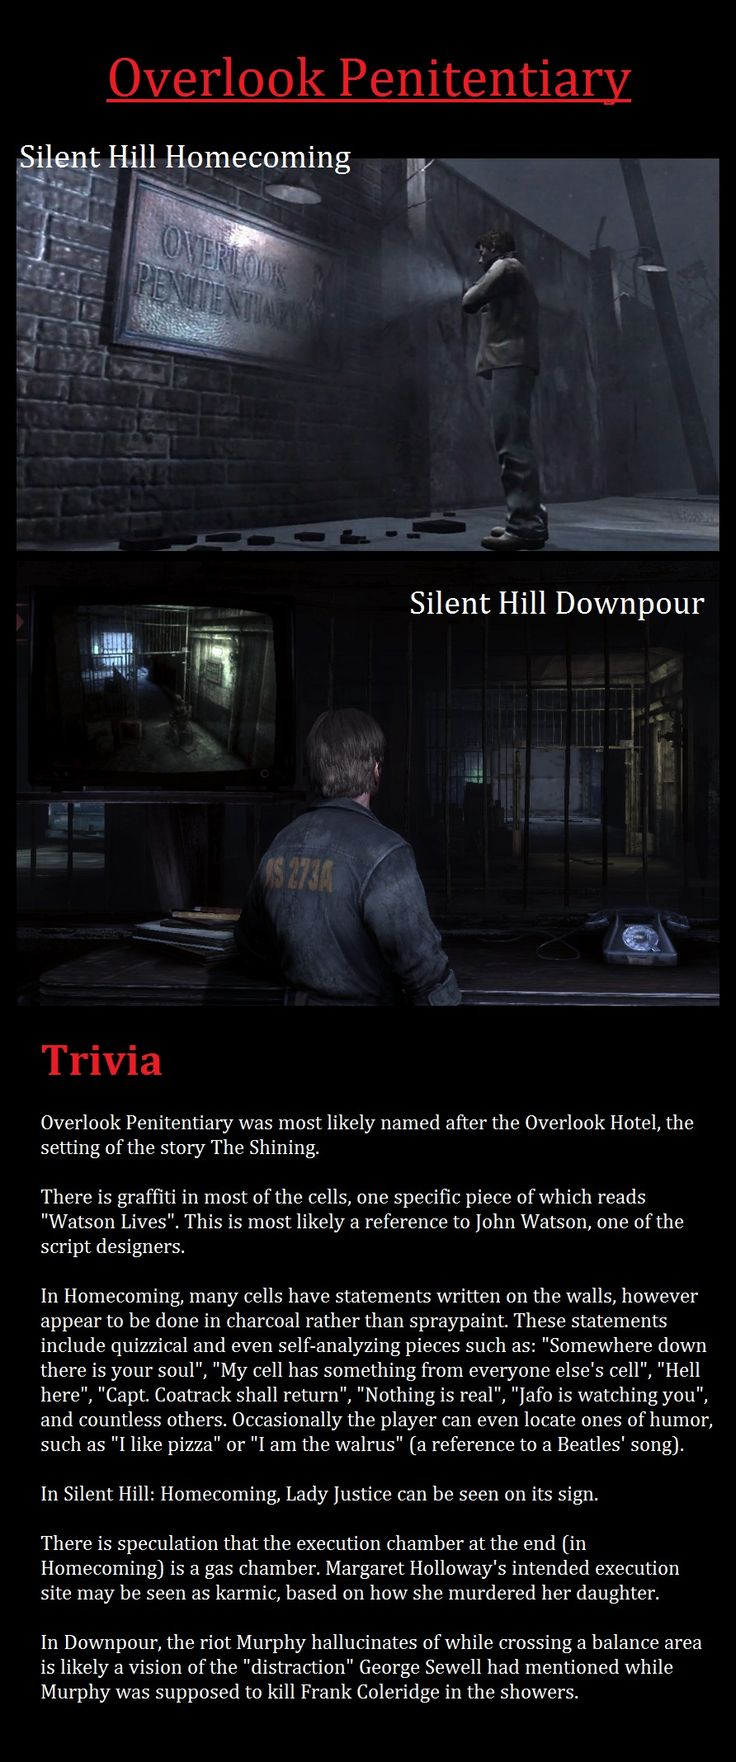 Silent Hill Homecoming & Silent Hill Downpour - Trivia - Overlook Penitentiary